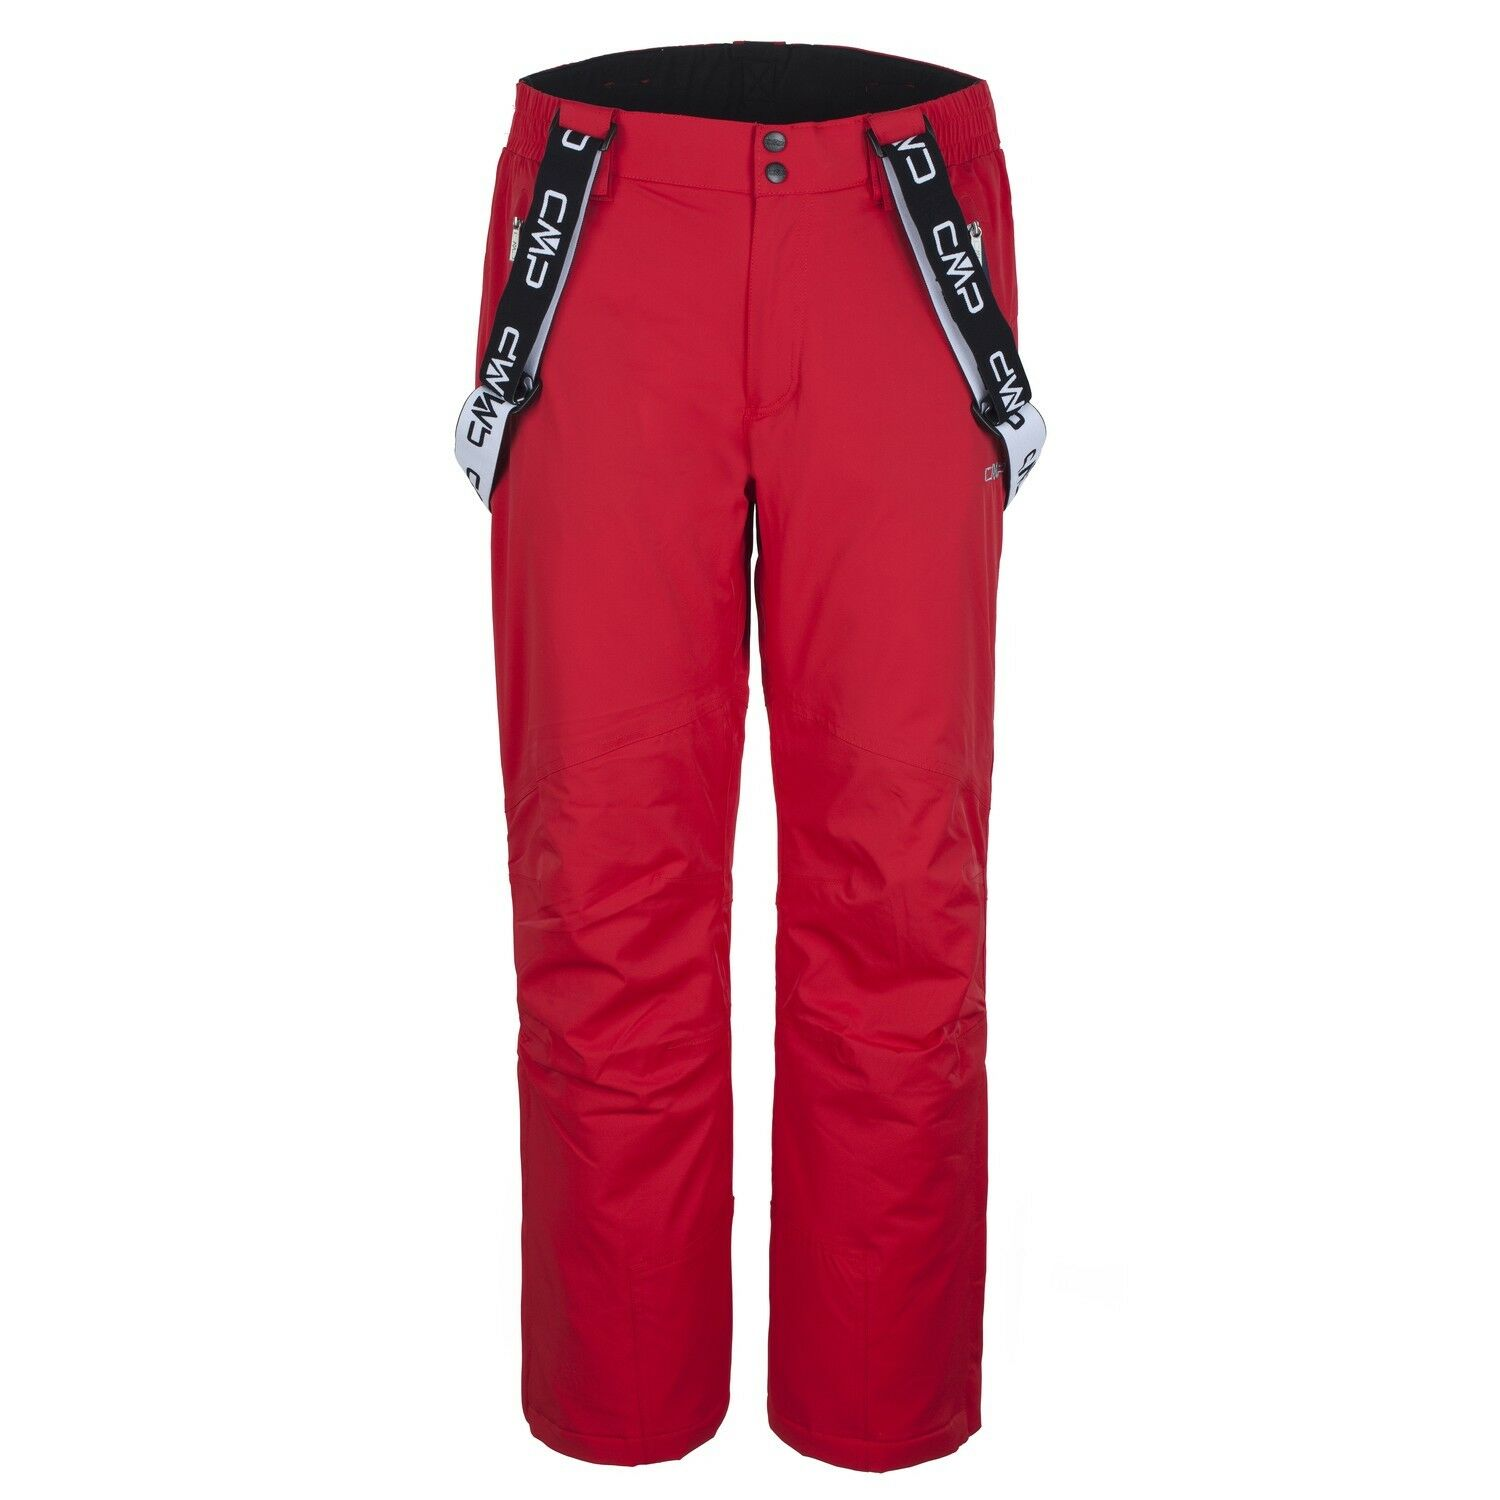 CMP Ski Trousers Snowboard Trousers One Trousers Red Windproof Waterproof